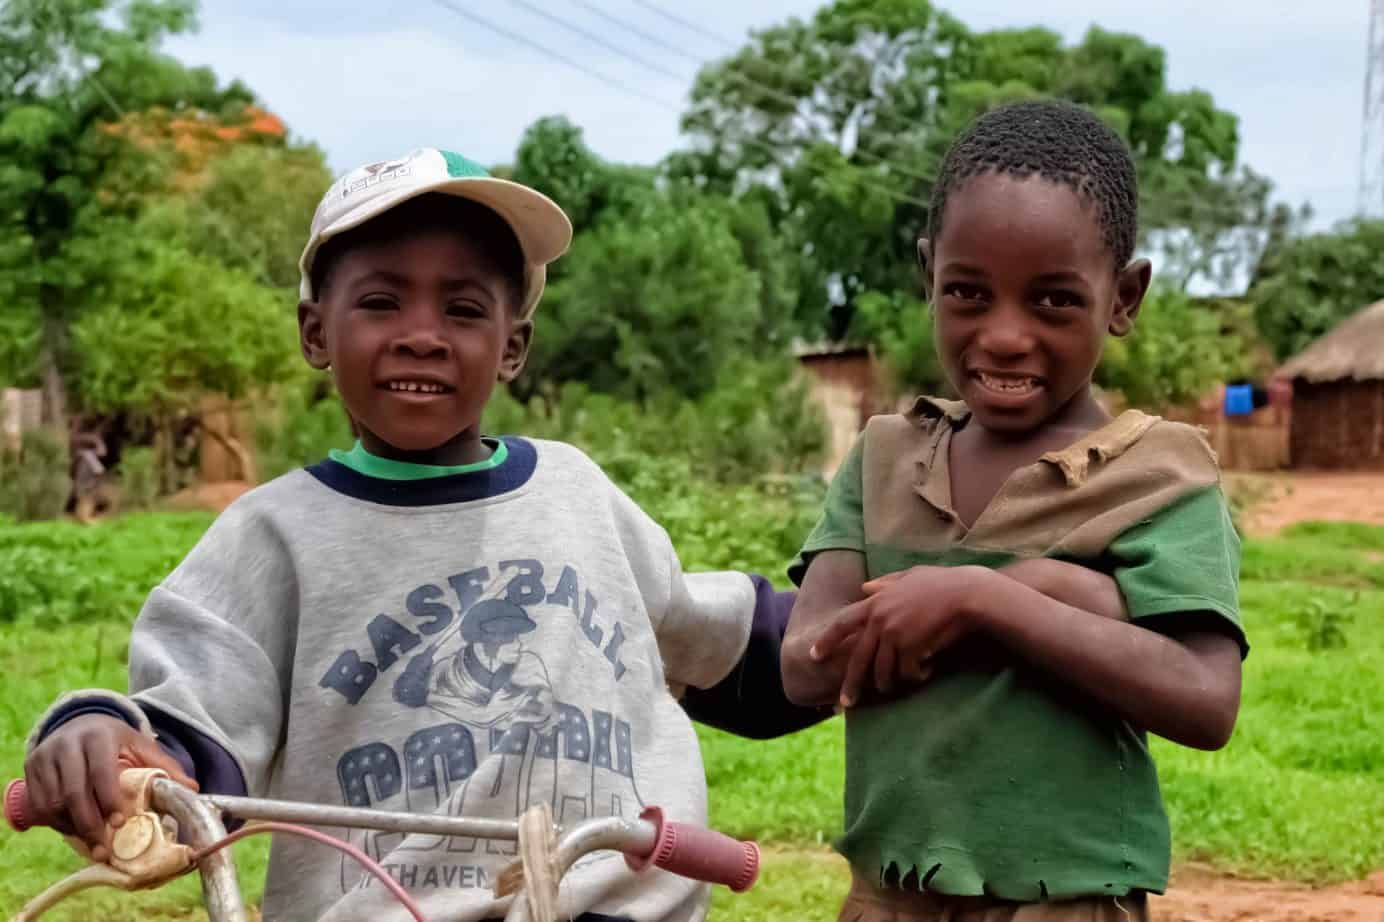 Friendly Children in Zambia